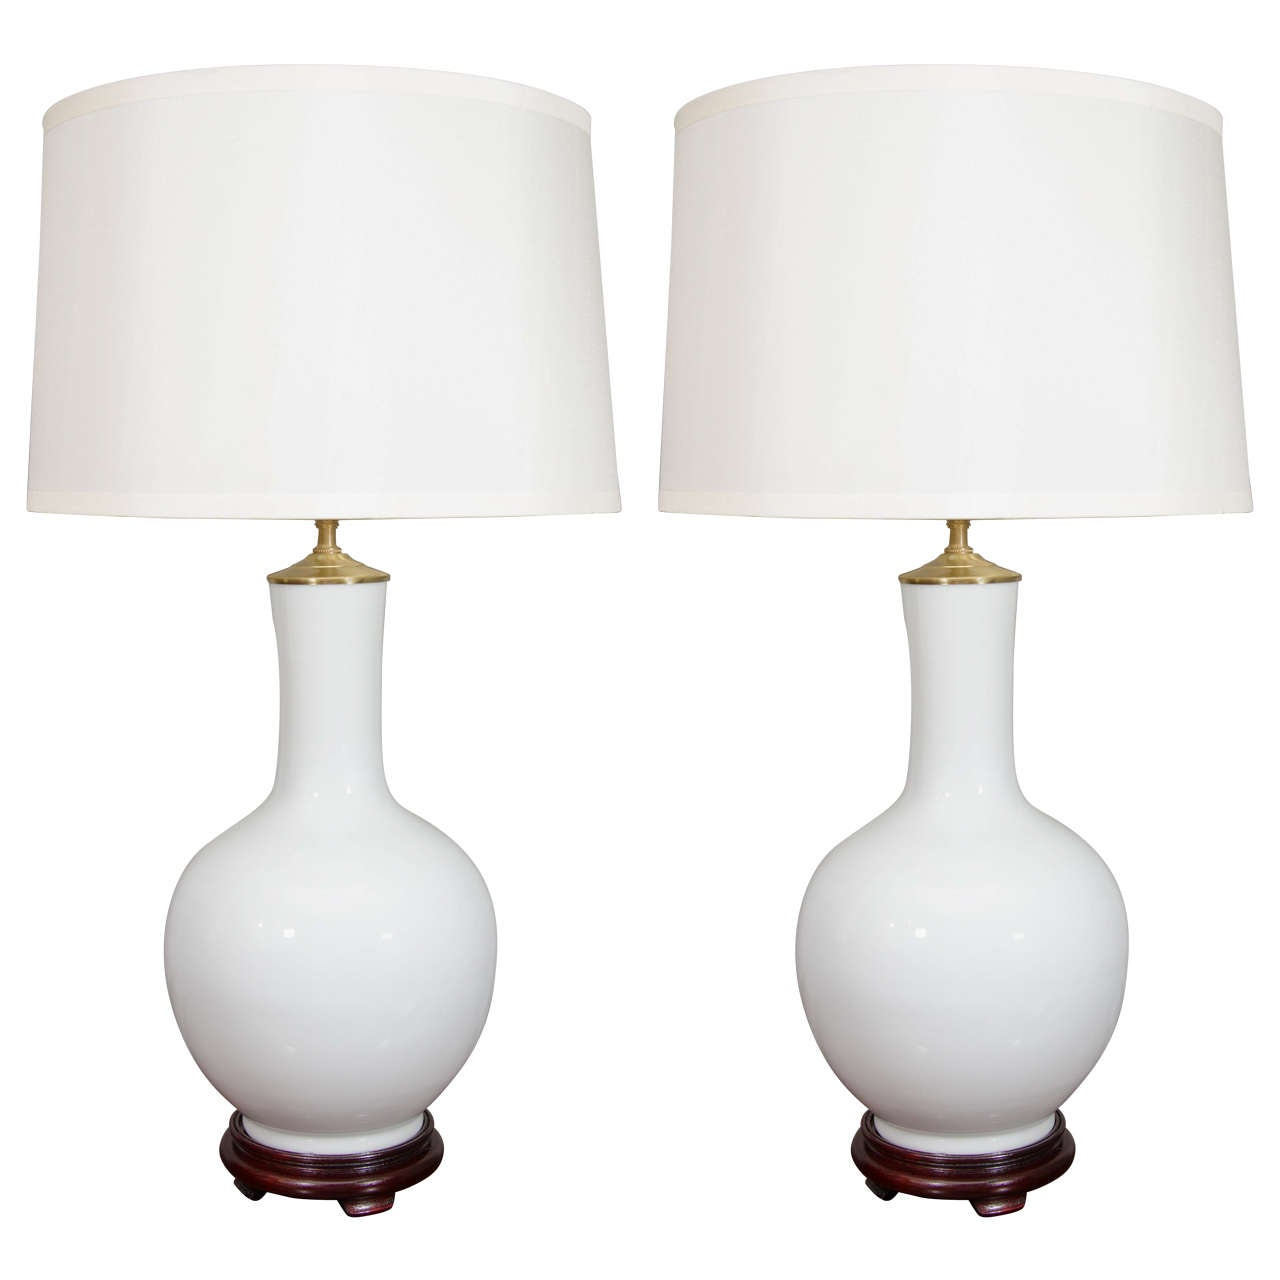 White porcelain lamps, 20th century